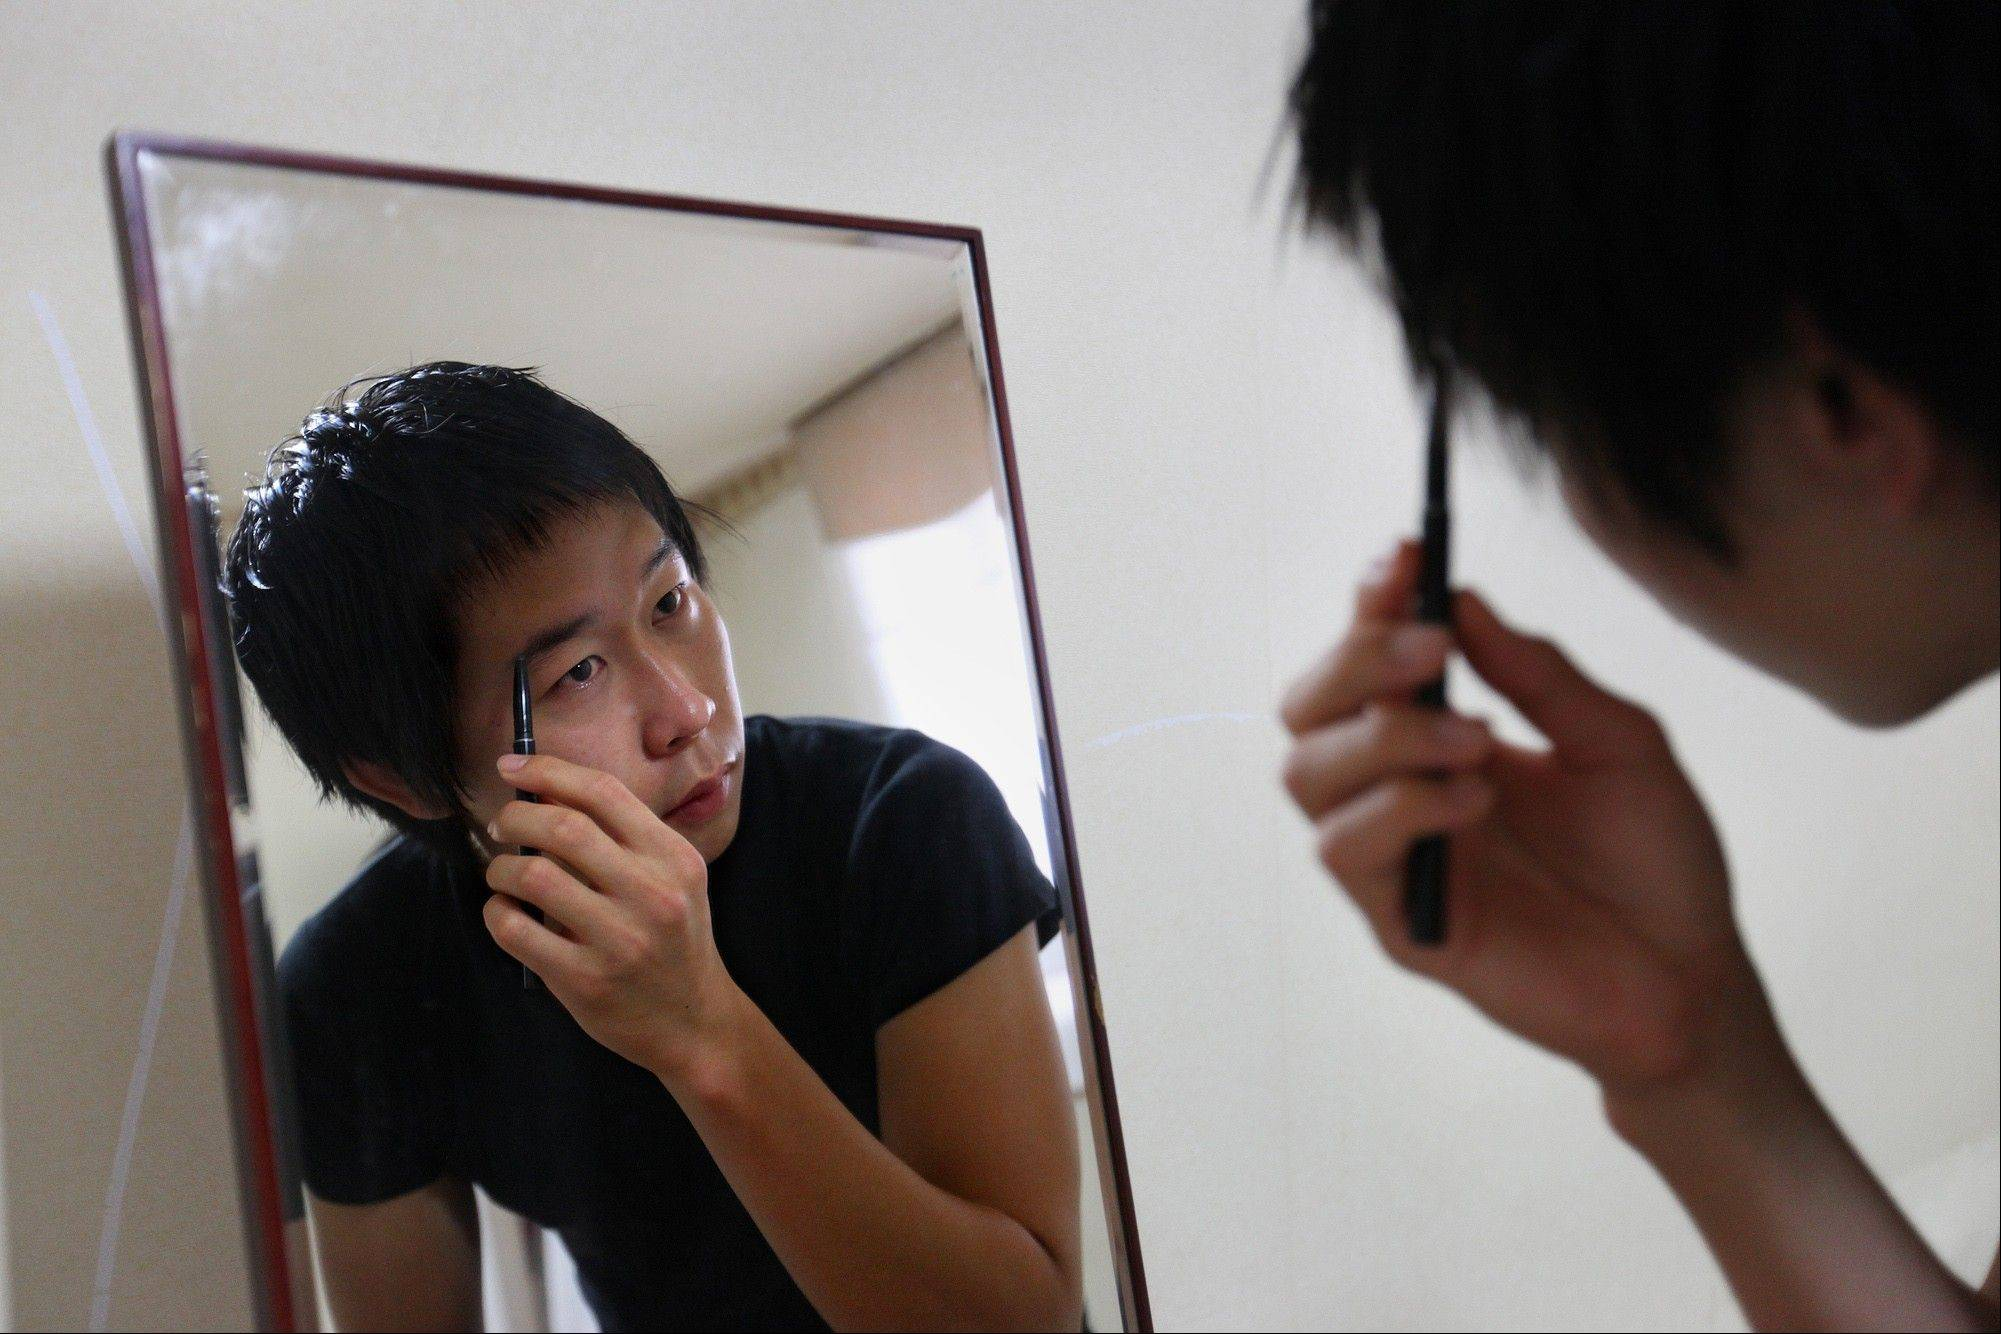 Cho Won-Hyuk, a 24-year-old college student, uses a black eyebrow pencil to lengthen and accentuate his eyebrows at his home Anyang, South Korea. Cho's meticulous efforts to paint the perfect face are not unusual in South Korea. This socially conservative, male-dominated country, with a mandatory two-year military conscription for men, has become the male makeup capital of the world.